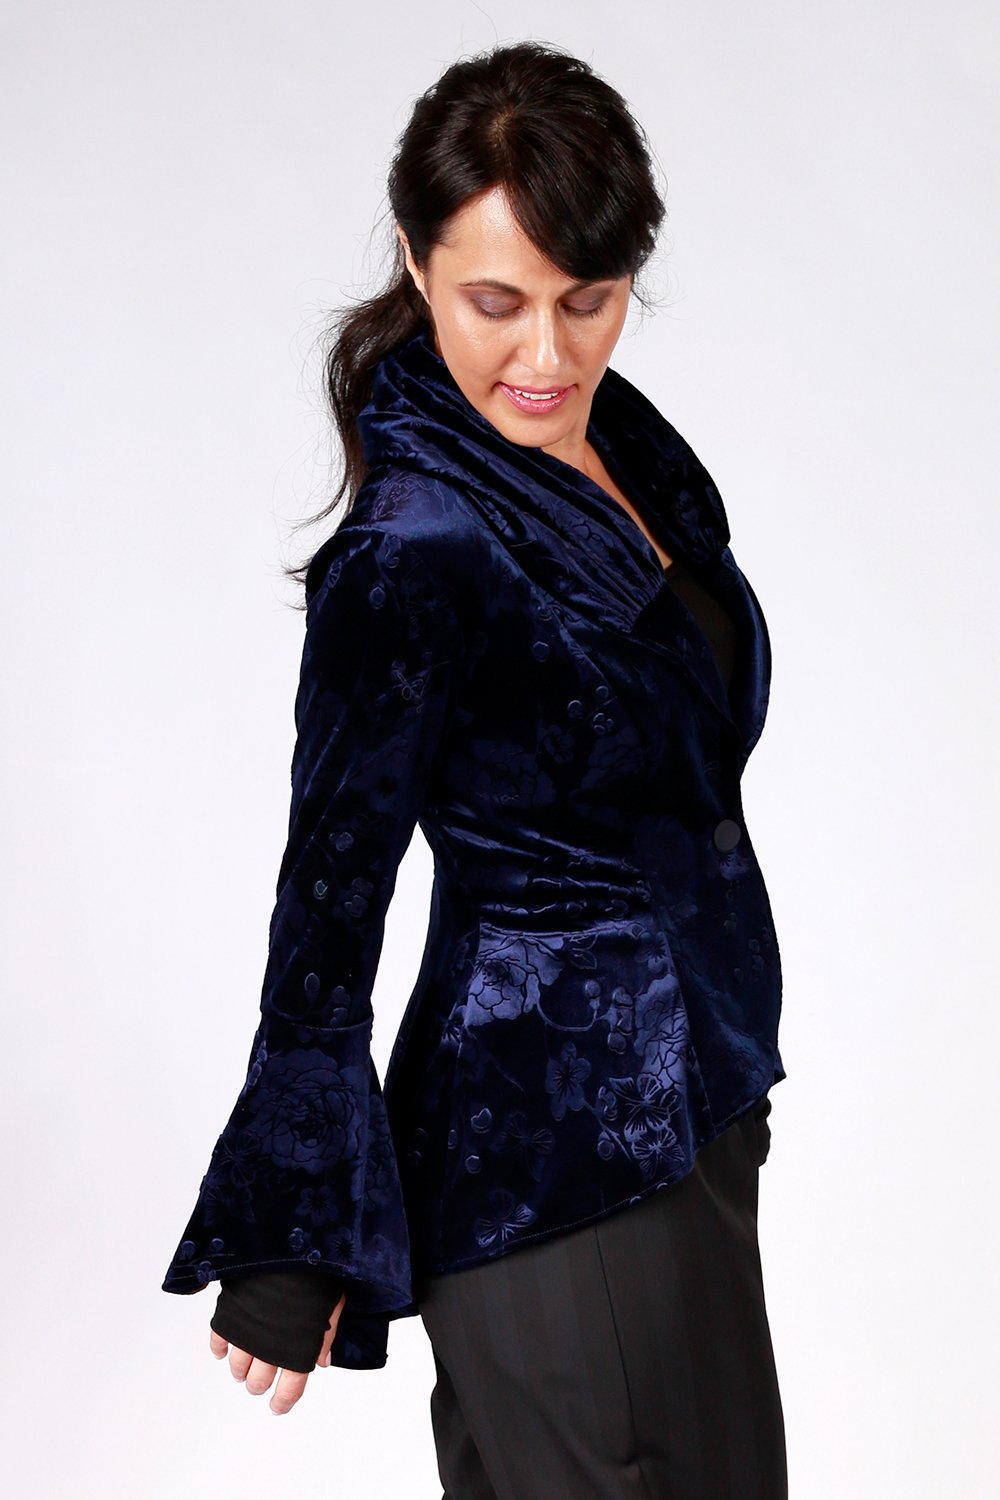 Ady Jacket | Annah Stretton AW20 | Gypsy Fare Collection | Velvet Jacket Coat | Shot on Model | Navy Jacket